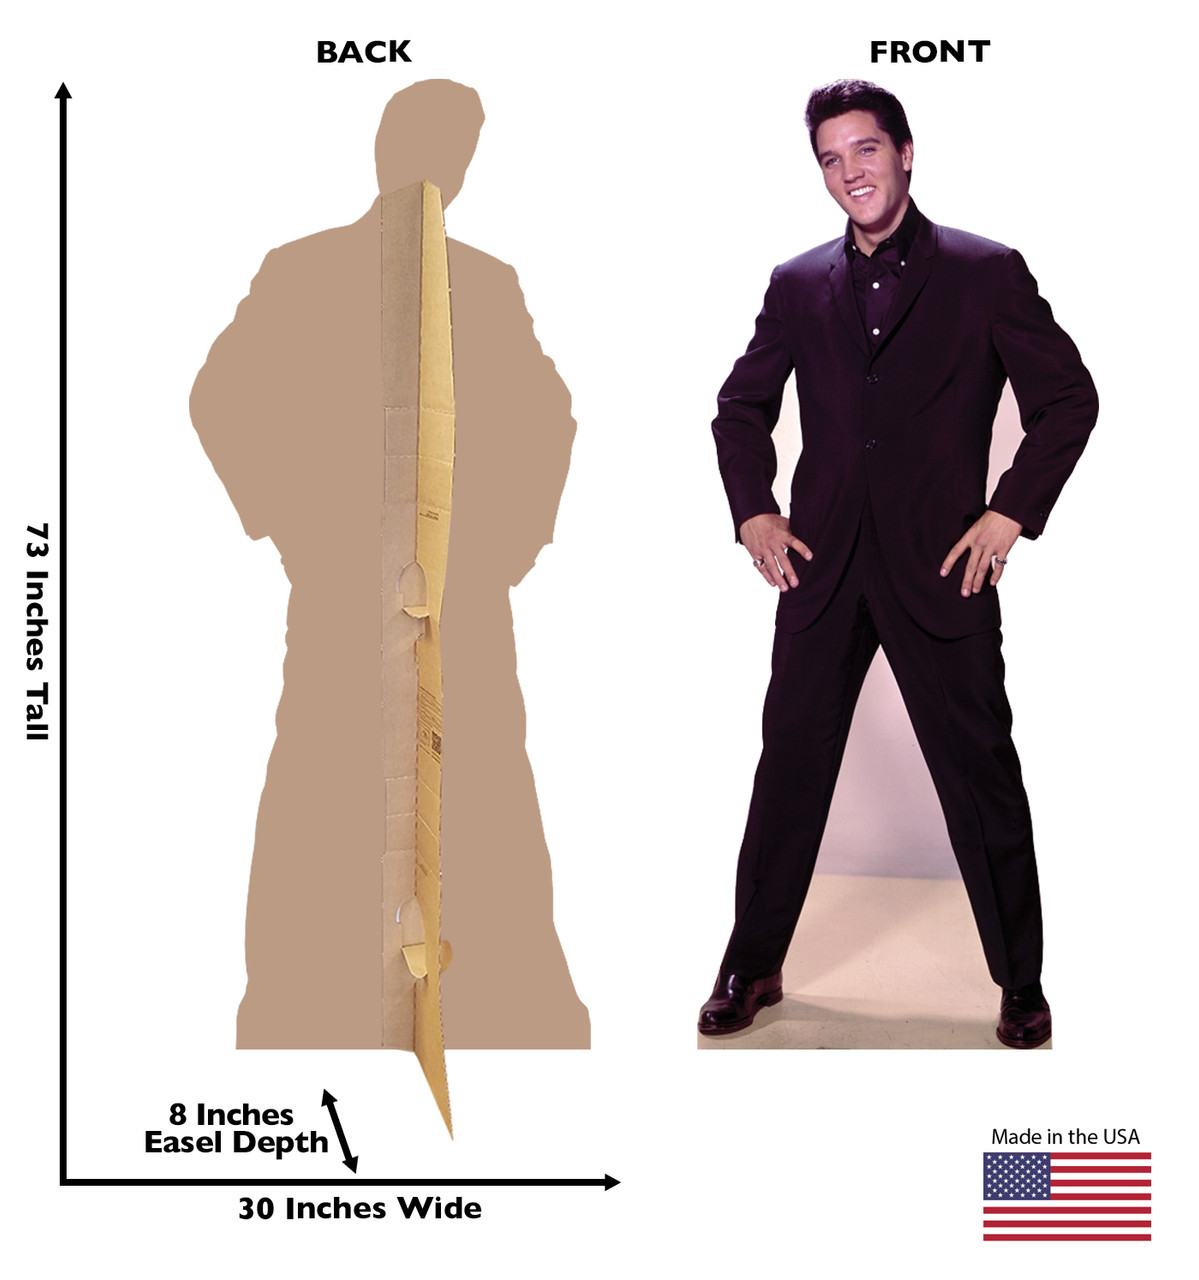 Elvis Presley Hands on Hips - Talking Cardboard Cutout 843T